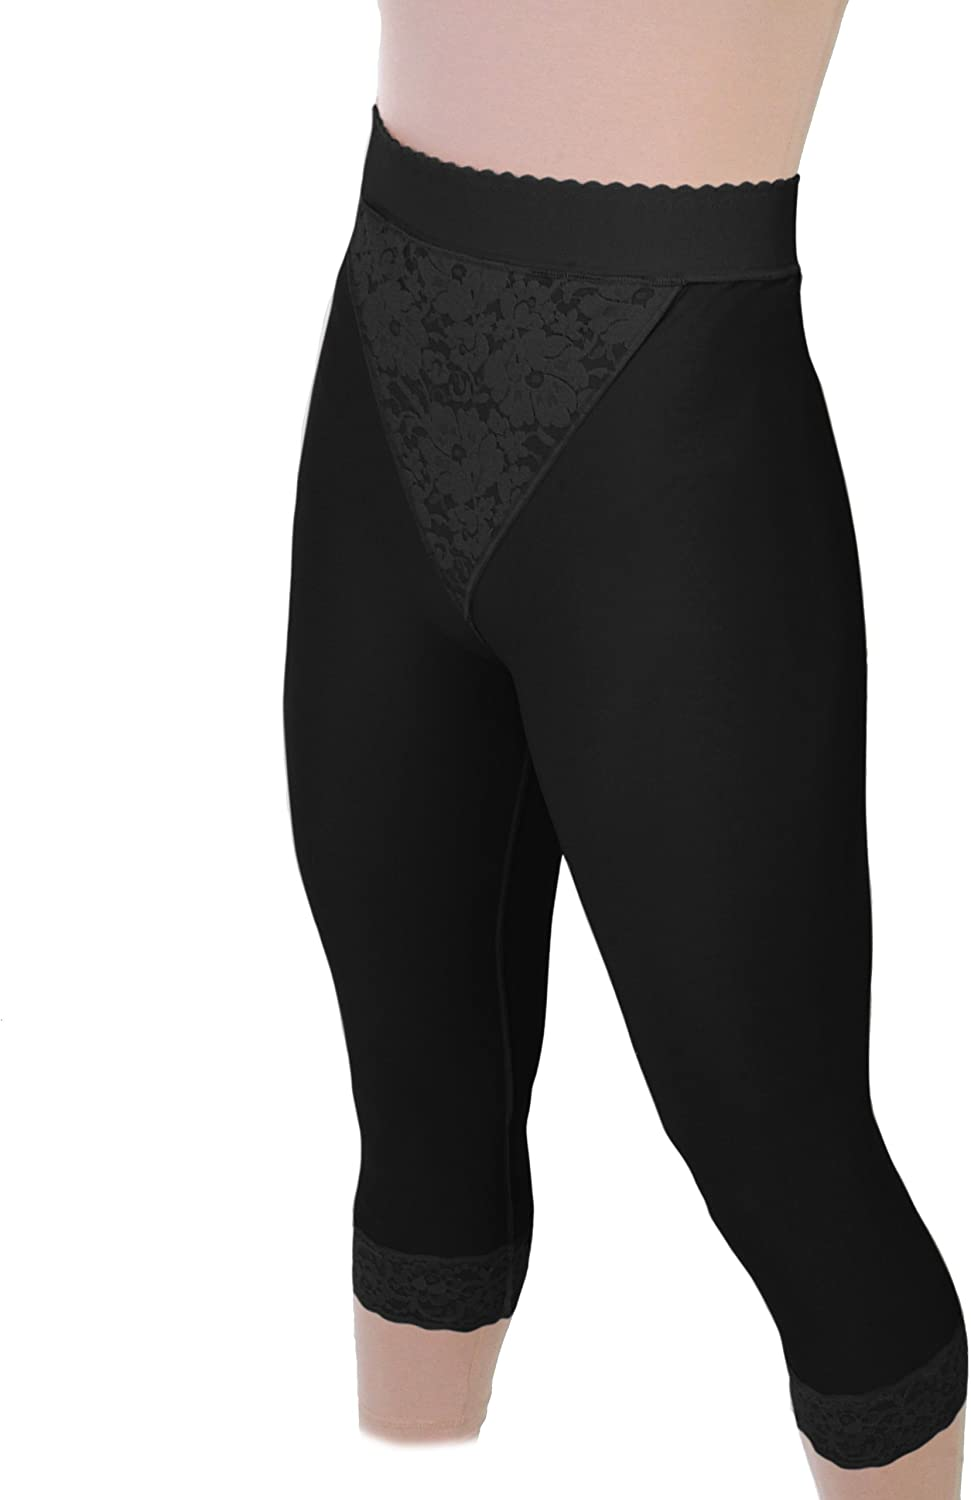 Weekly update 2nd Stage Compression Girdle Black Dallas Mall Cr Shapewear Mid-Calf Closed